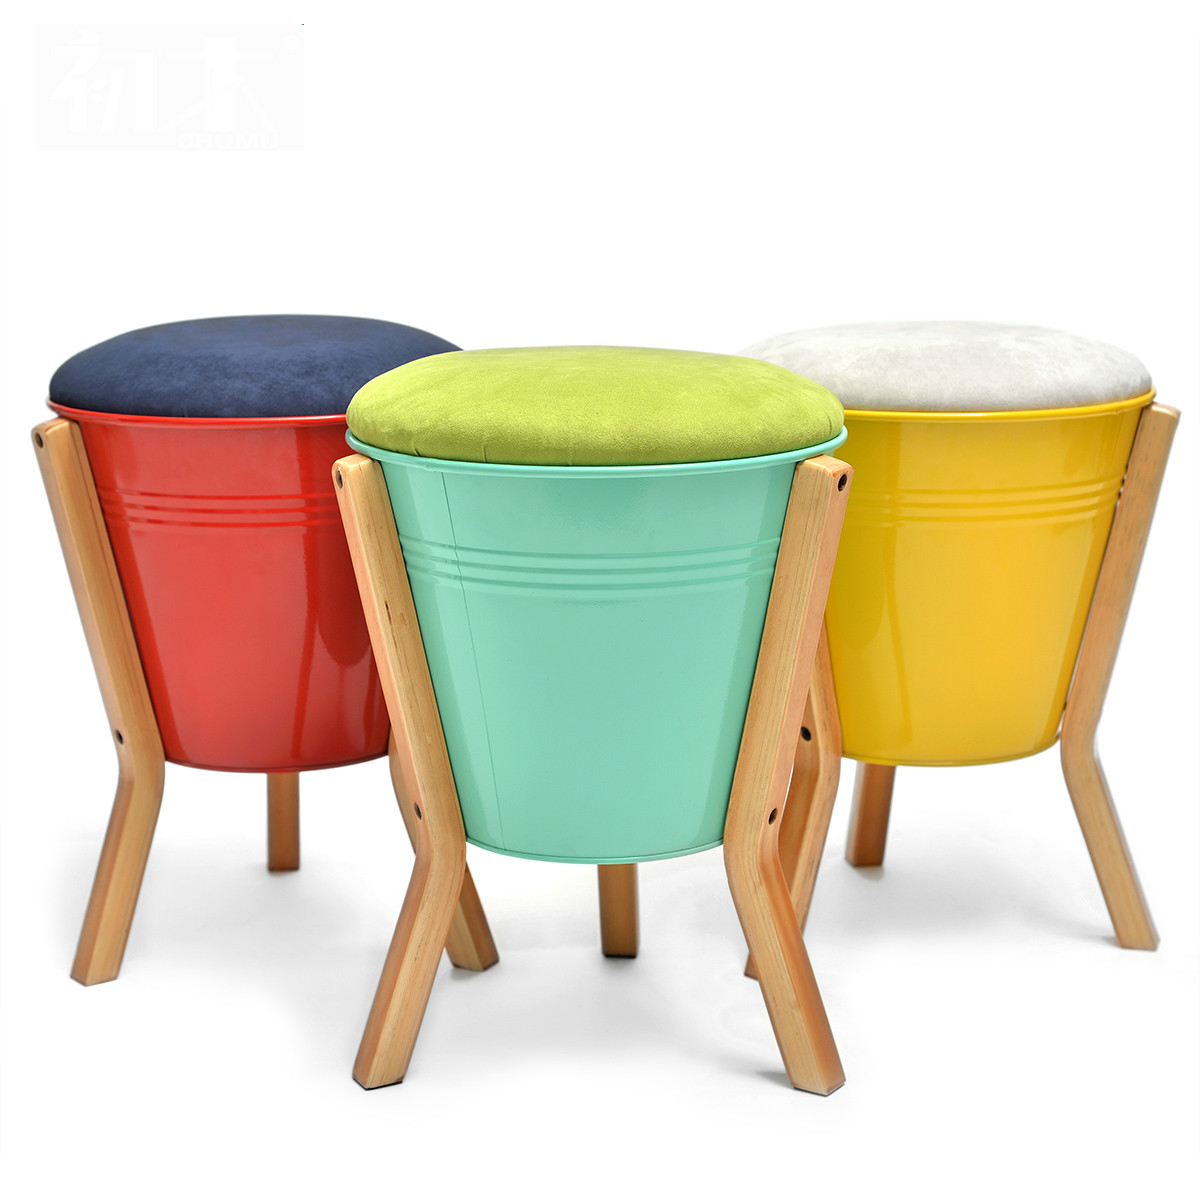 High quality practical small home stool ottoman modern minimalist fashion creative footstool wooden 3 legs shoe  sc 1 st  AliExpress.com & Online Get Cheap Ottoman Stool -Aliexpress.com | Alibaba Group islam-shia.org